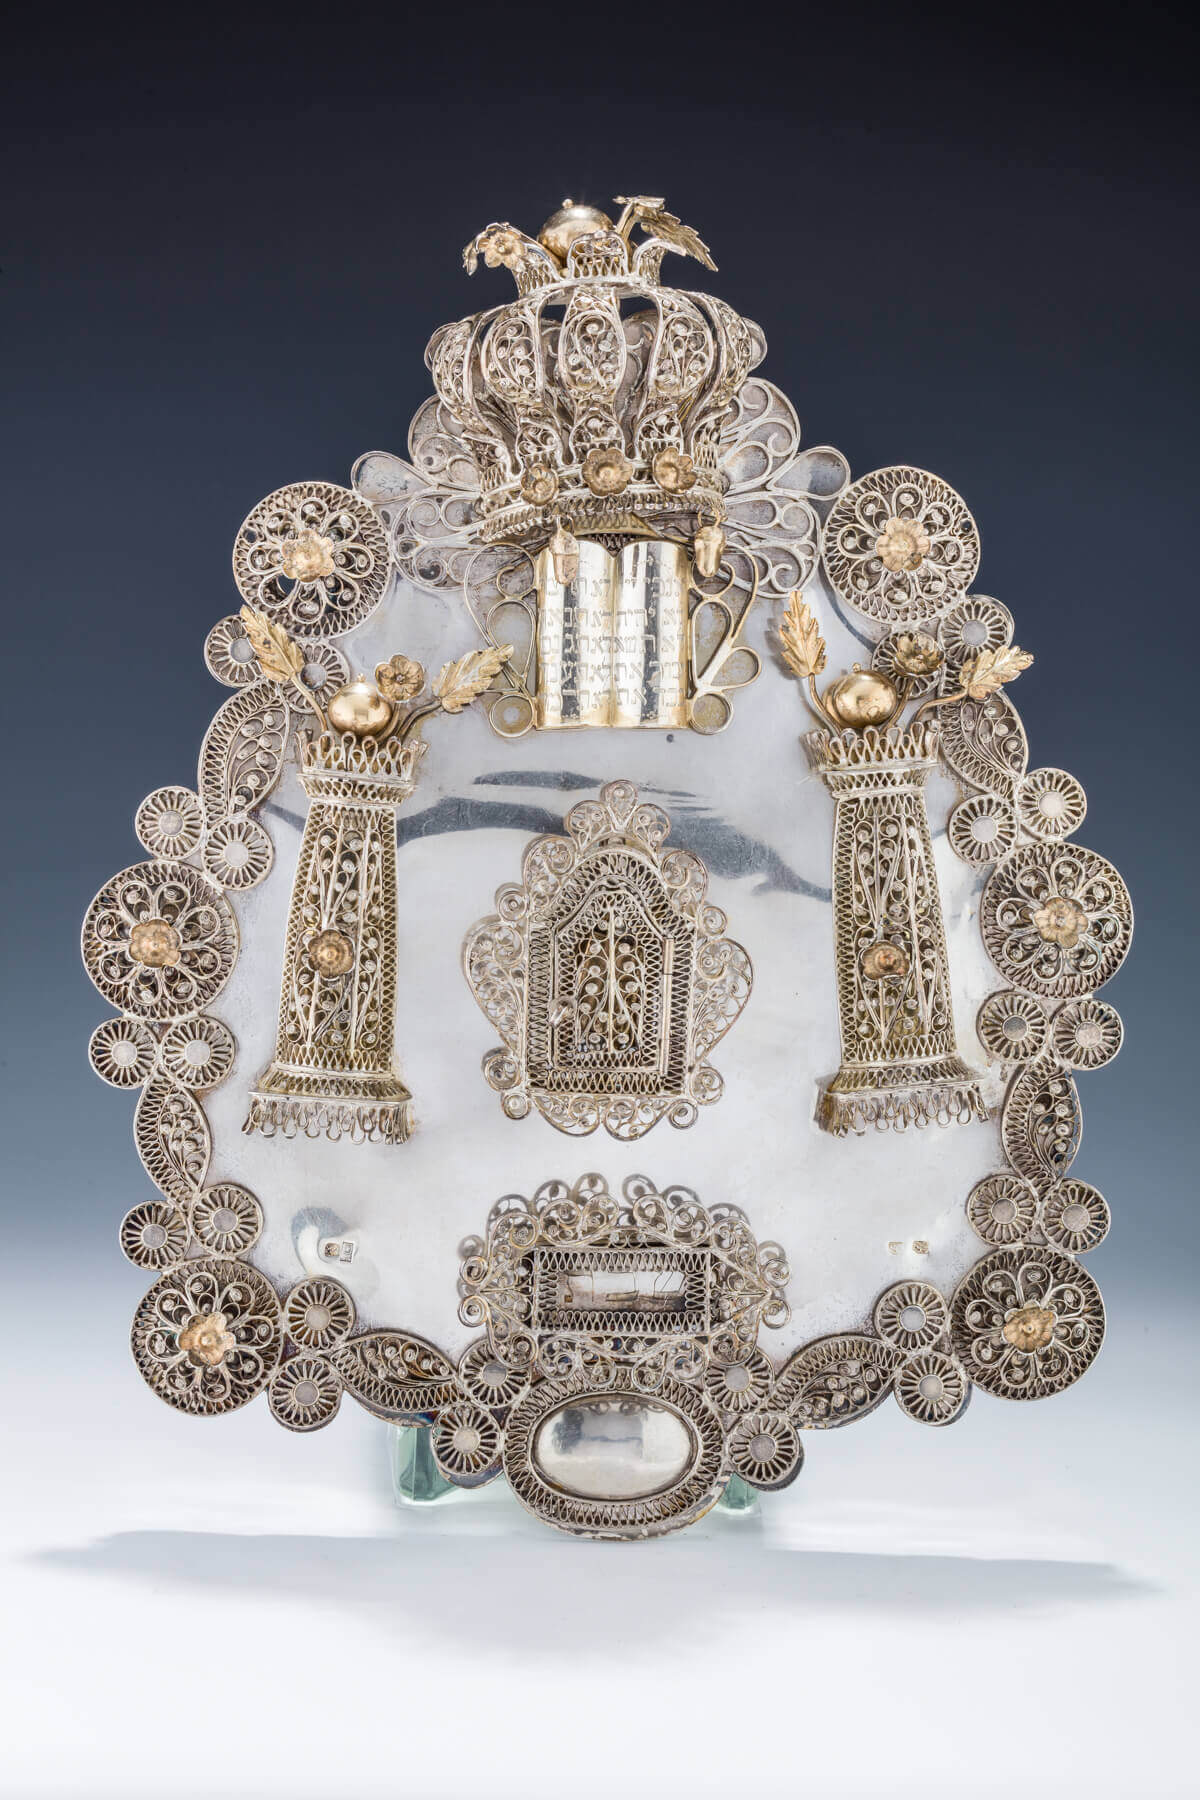 020. A LARGE SILVER TORAH SHIELD